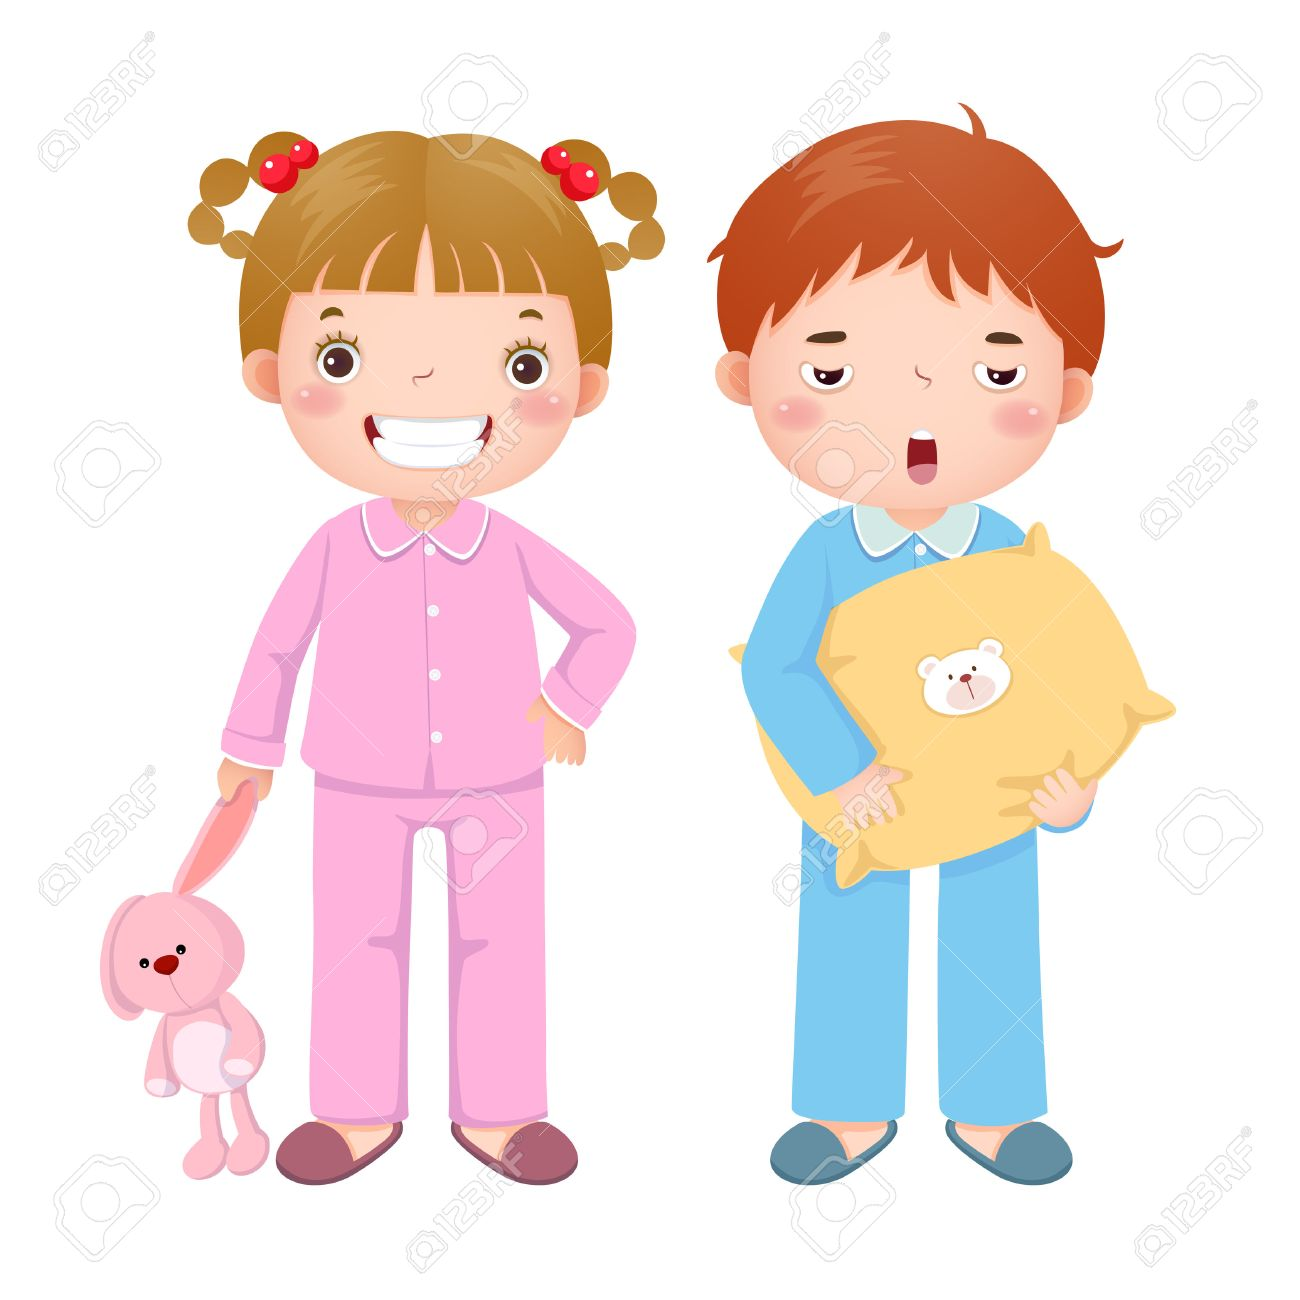 Vector illustration of children wearing pajamas and getting ready to sleep - 64963530